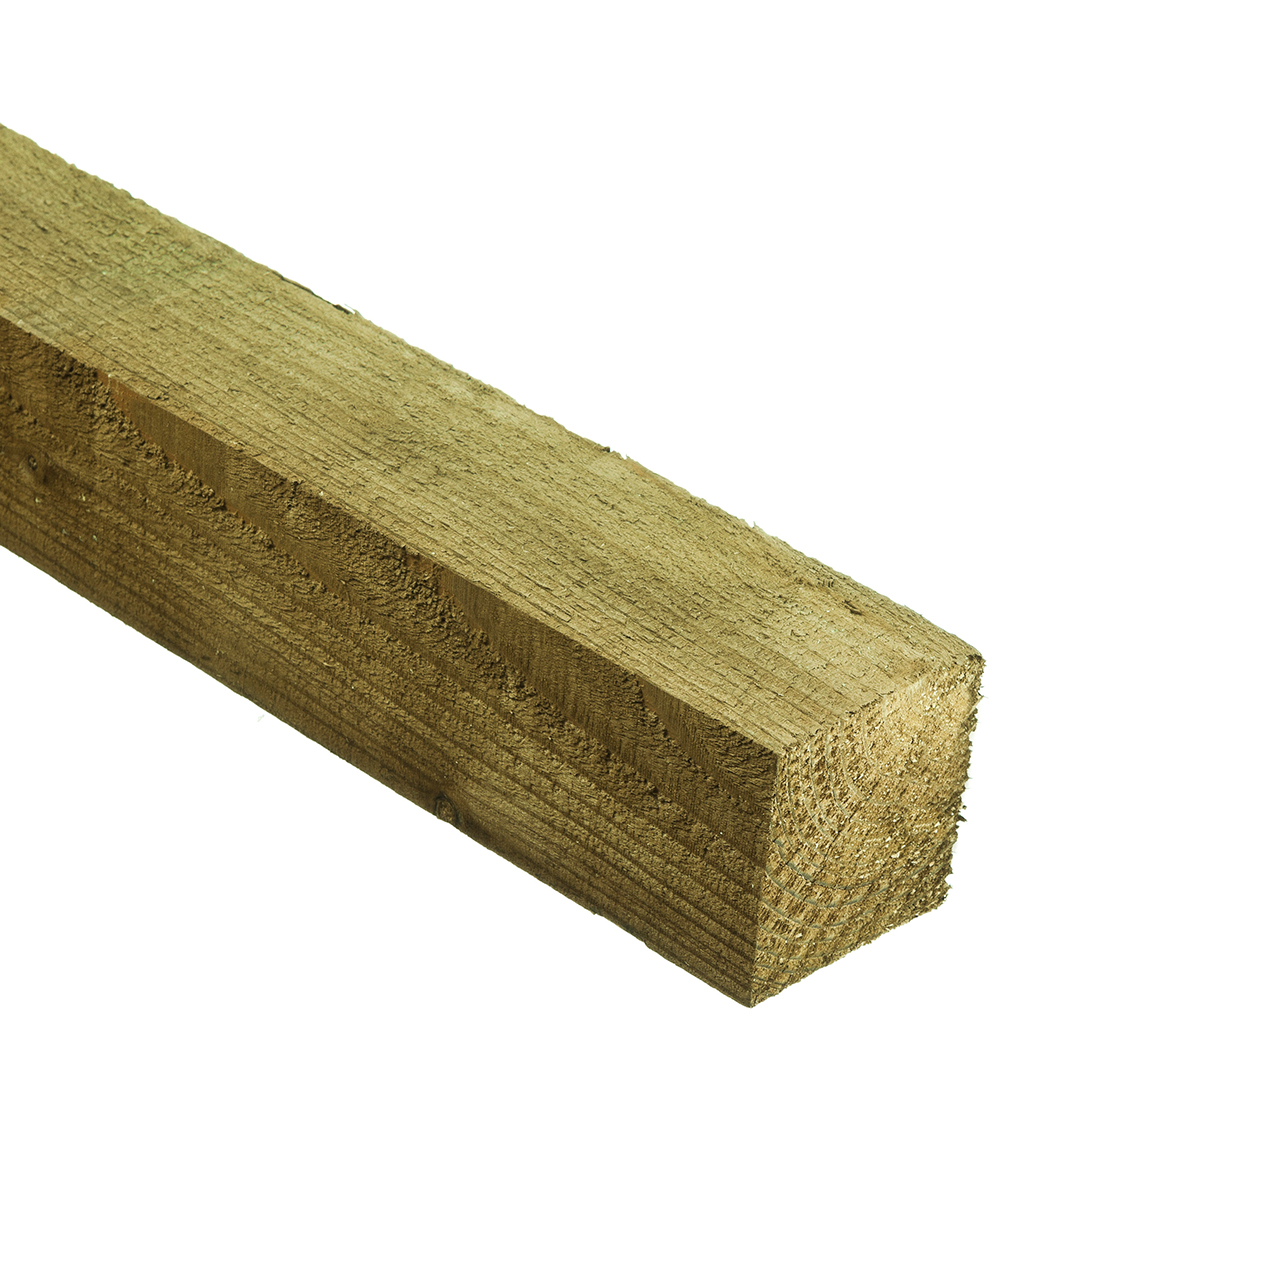 Fence Post Green Treated 100mm x 100mm x 2.4m image 0